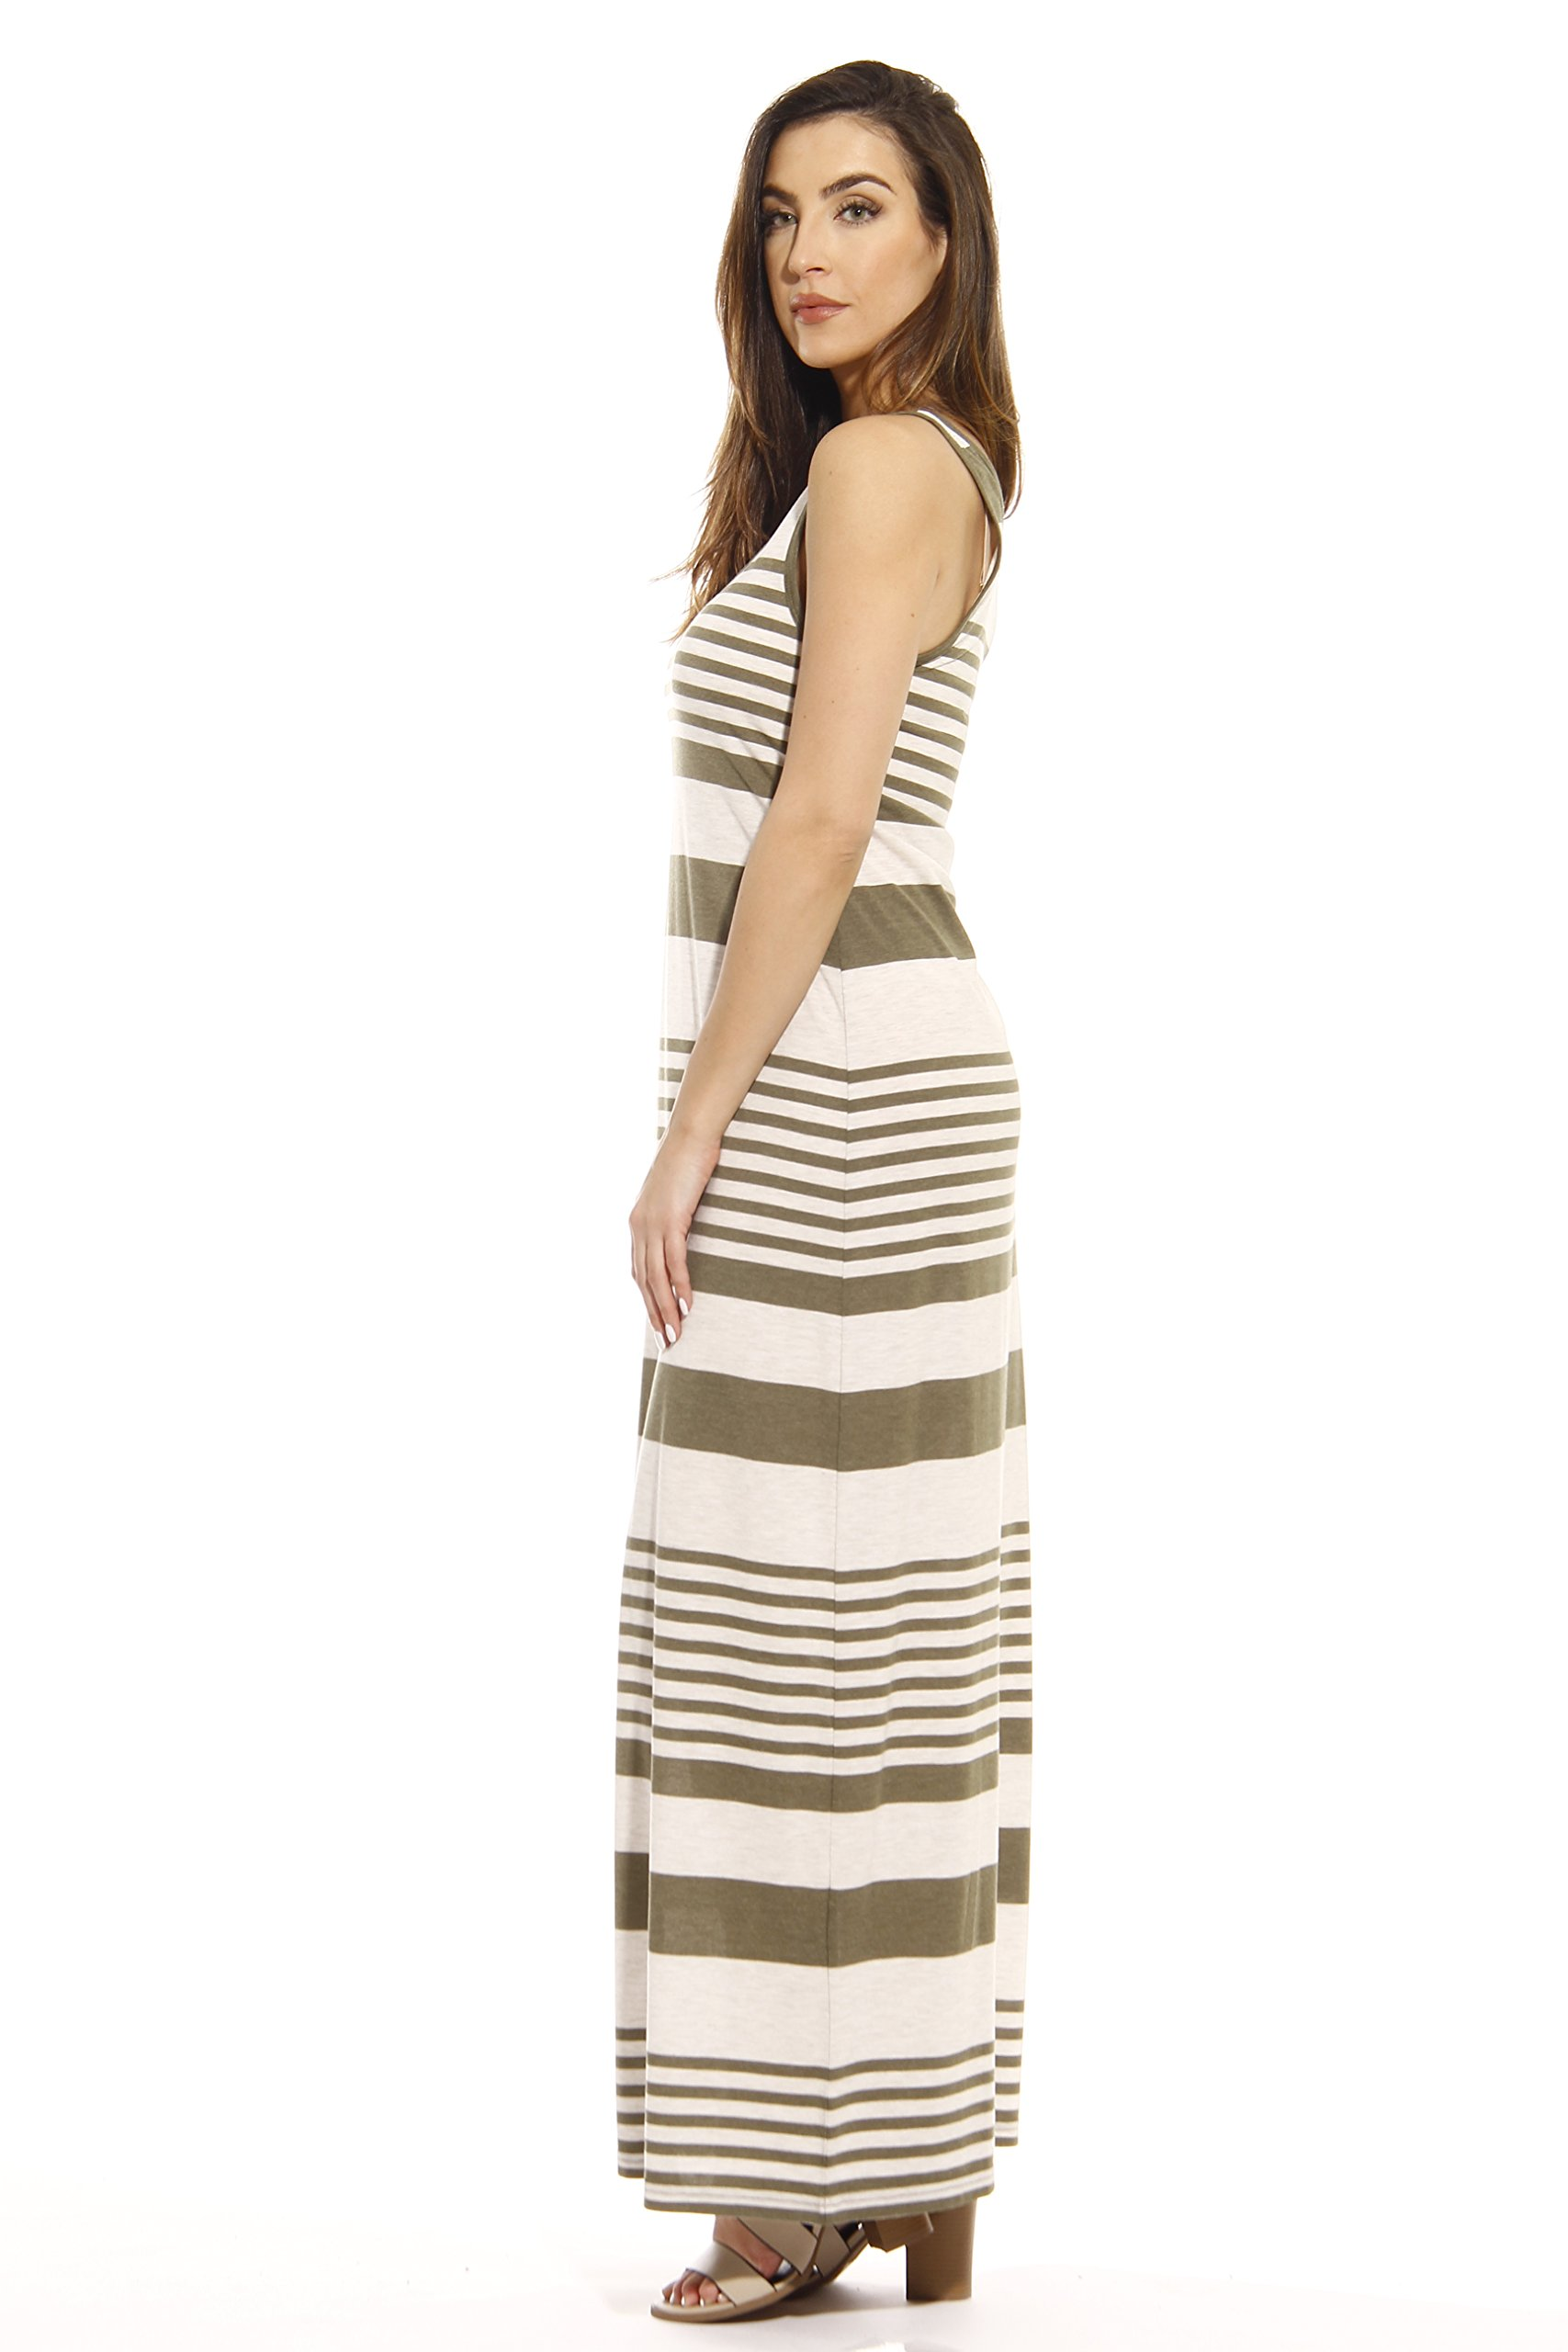 3007-138-OLVC-3X Just Love Summer Dresses / Maxi Dress by Just Love (Image #2)